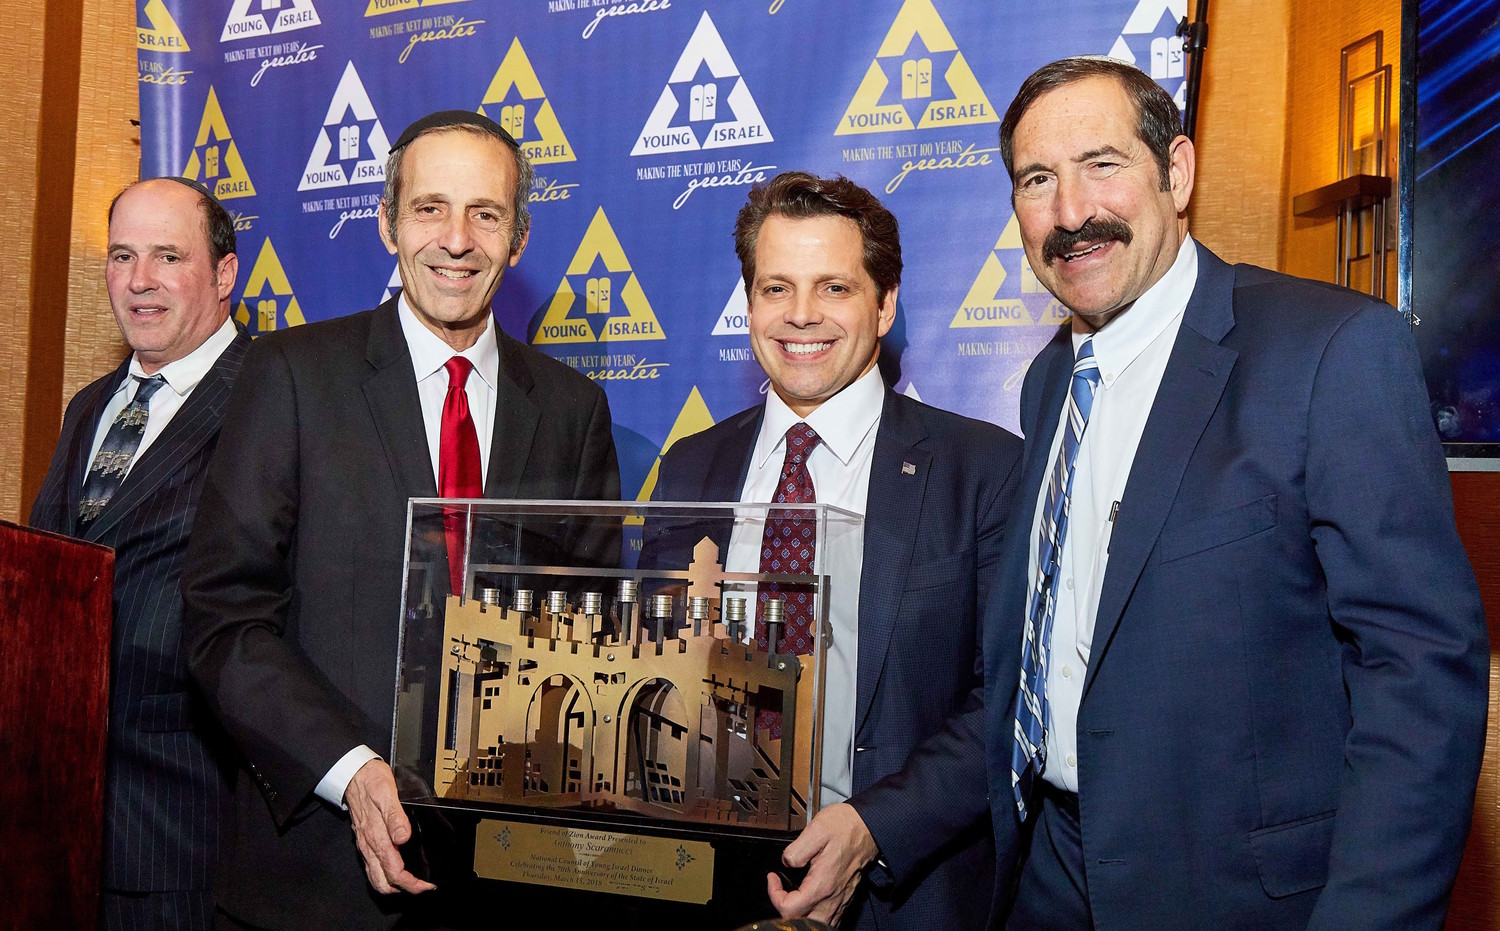 At NCYI's 2018 gala, Anthony Scaramucci, former press secretary for President Trump, was presented with the Friend of Zion Award by (from left) NCYI President Farley Weiss, Journal and Dinner Coordinator Judah Rhine, and NCYI First Vice President Dr. Joseph Frager.